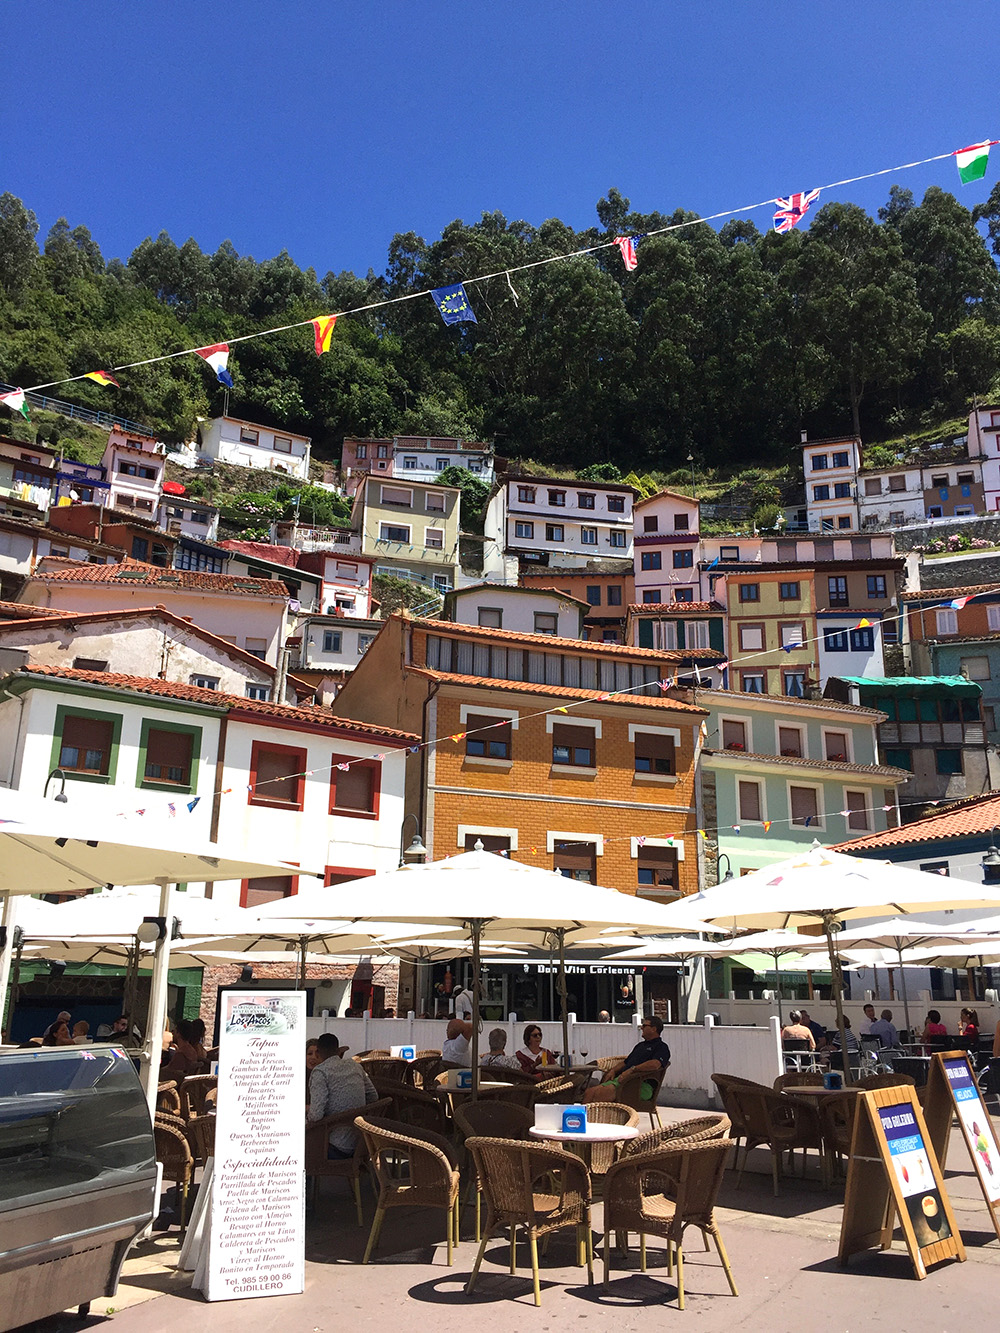 Northern-Spain-Cudillero.jpg